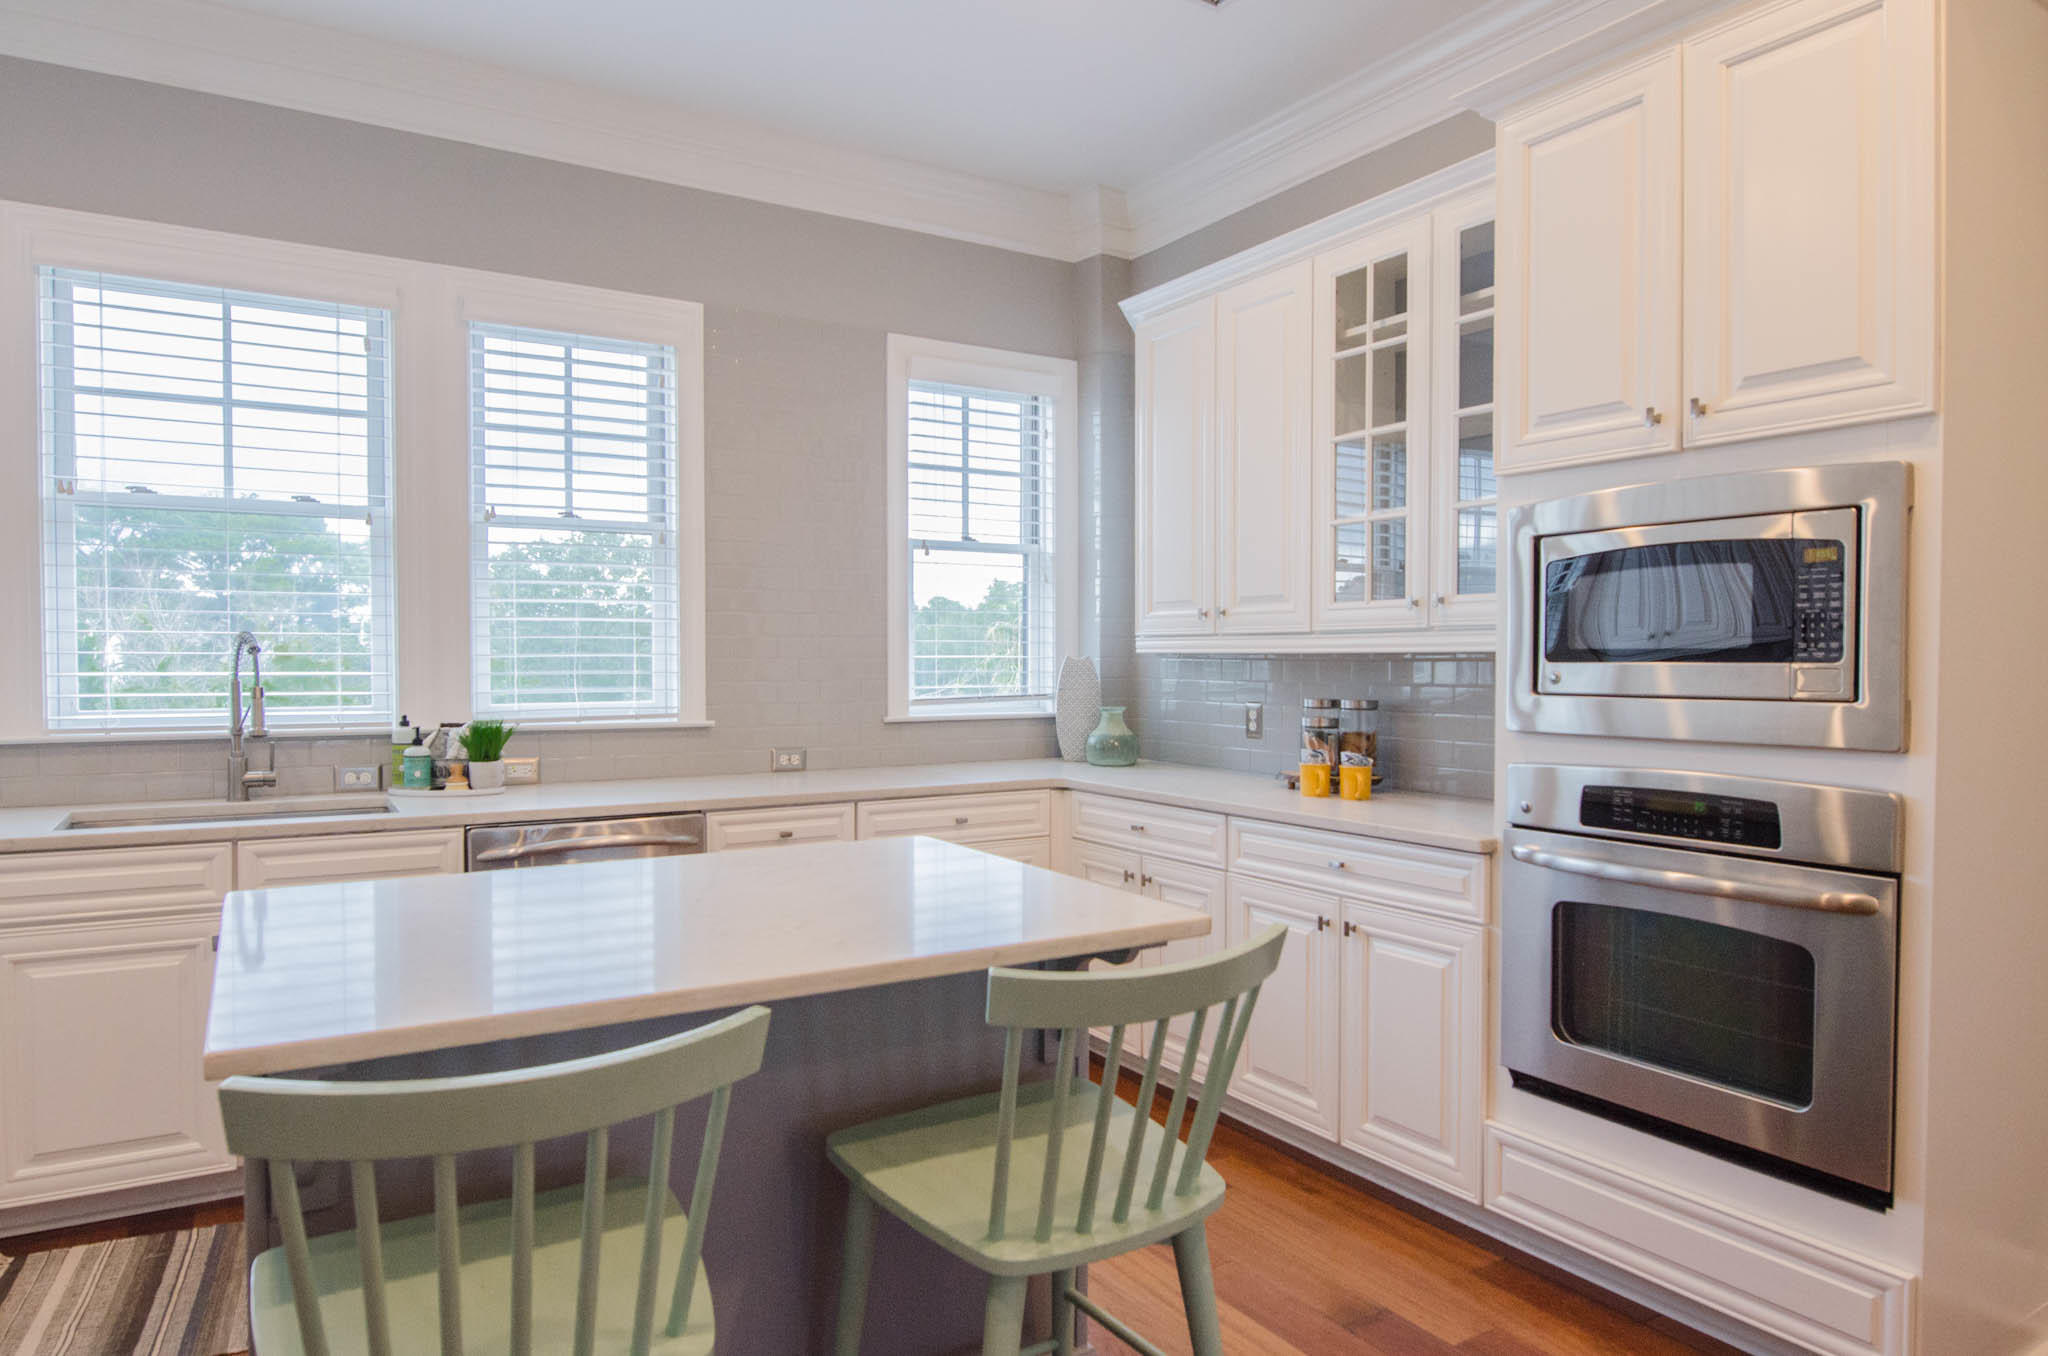 Sawyer's Landing Homes For Sale - 969 Cove Bay, Mount Pleasant, SC - 34